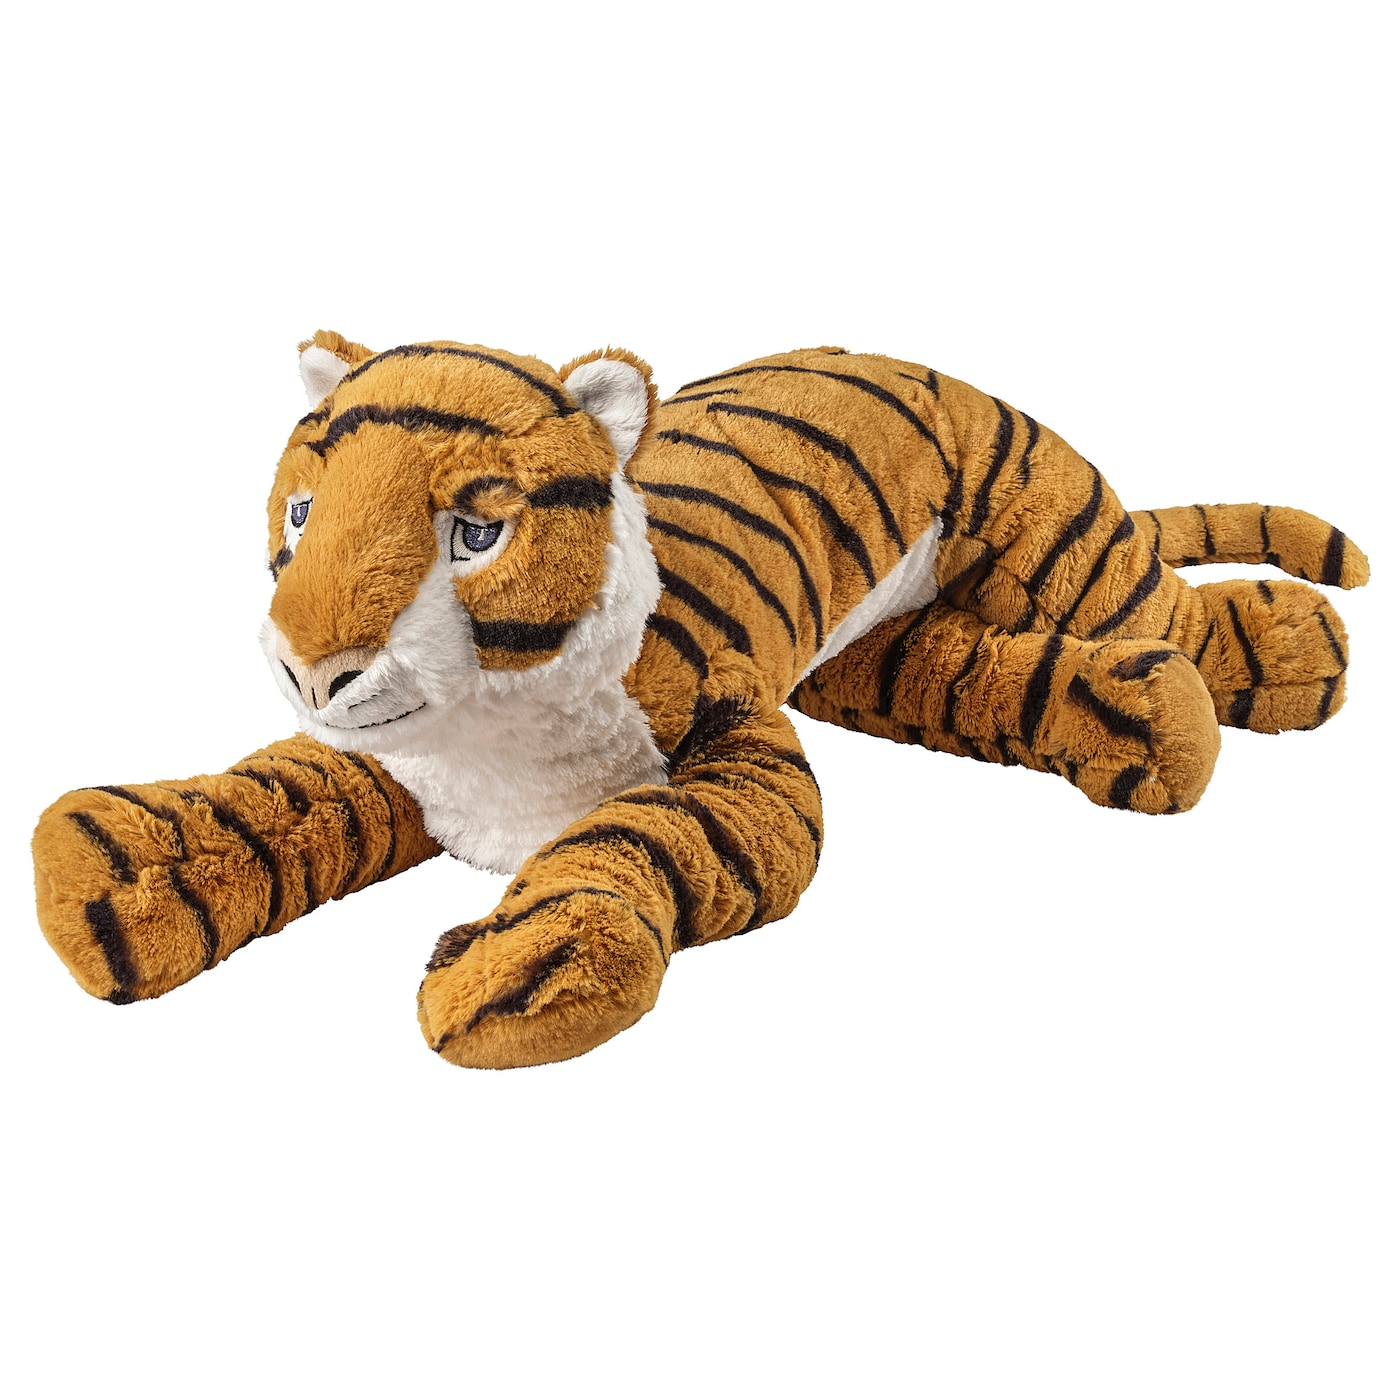 Djungelskog Soft Toy Tiger Ikea